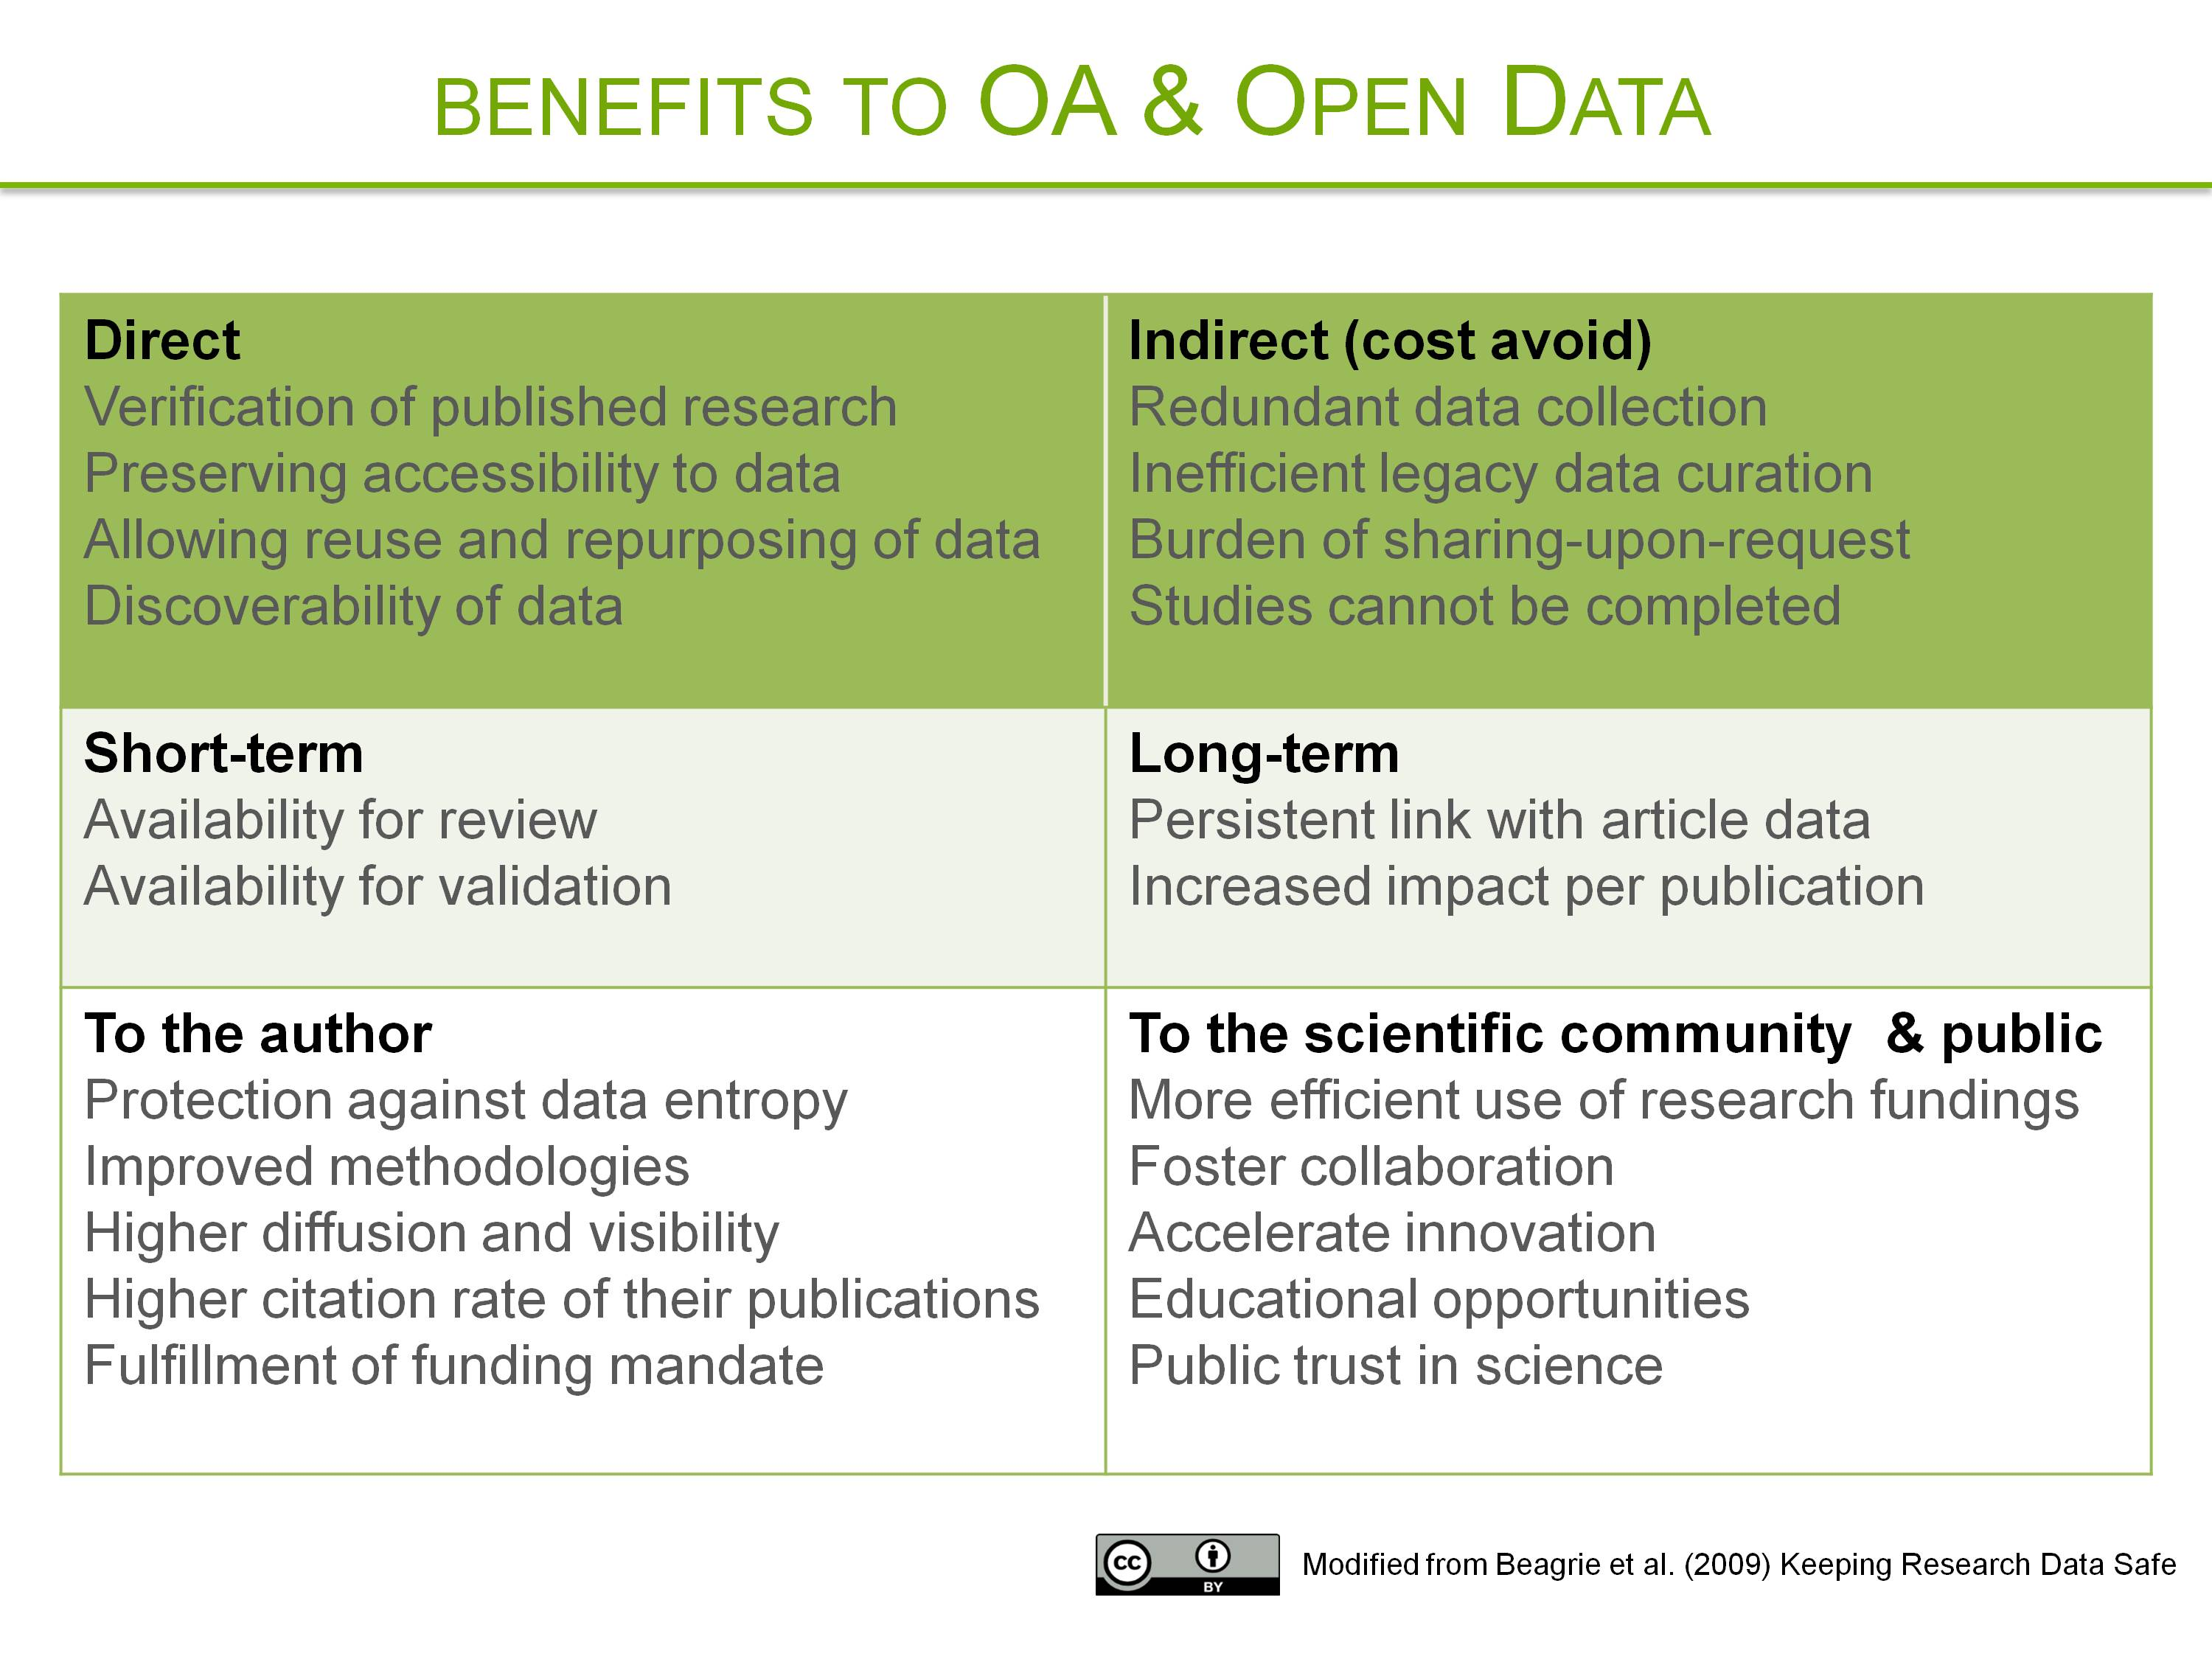 OA & Open Data Benefits